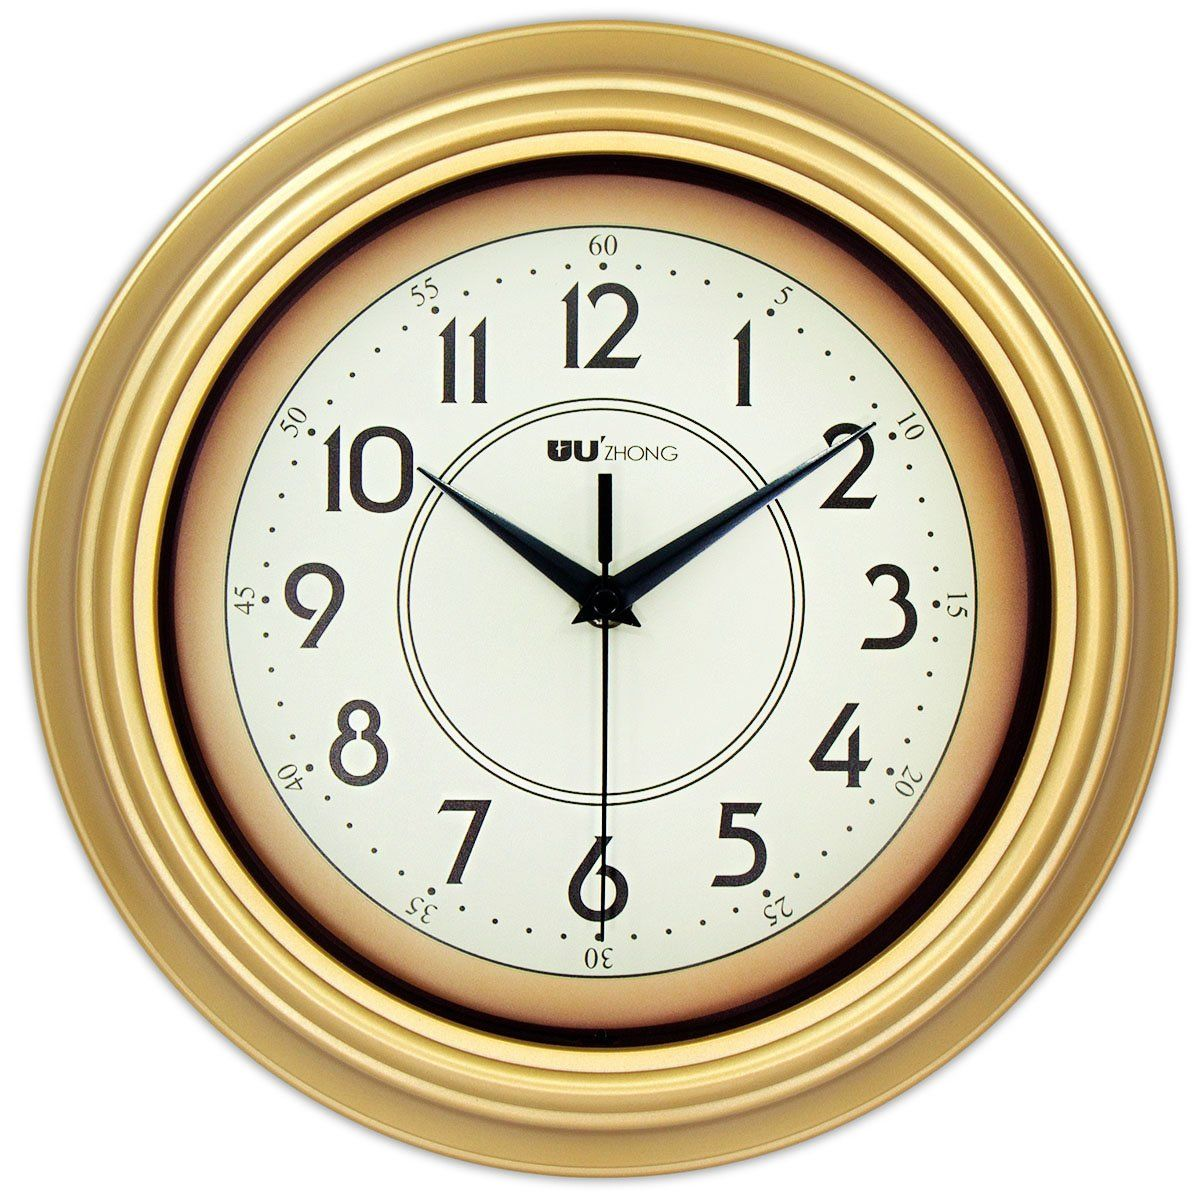 45min 12inch Golden Circle Of Decorated Dial Face Retro Wall Clock Silent Nonticking Round Home Decor Wall Clock Wi Retro Wall Clock Wall Clock Clock